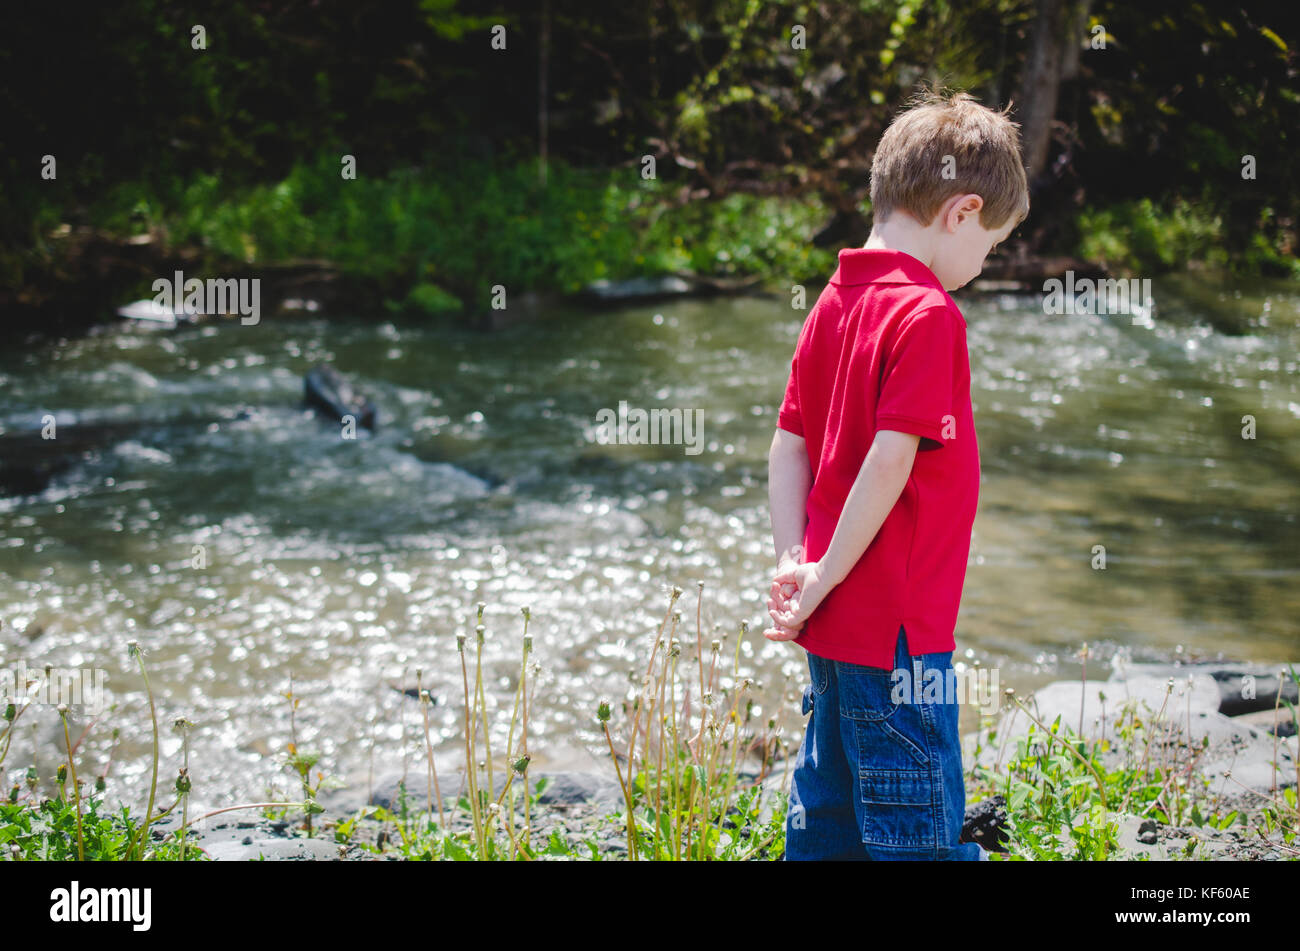 A young boy stands by a stream with his hands behind his back and his back to the camera. - Stock Image